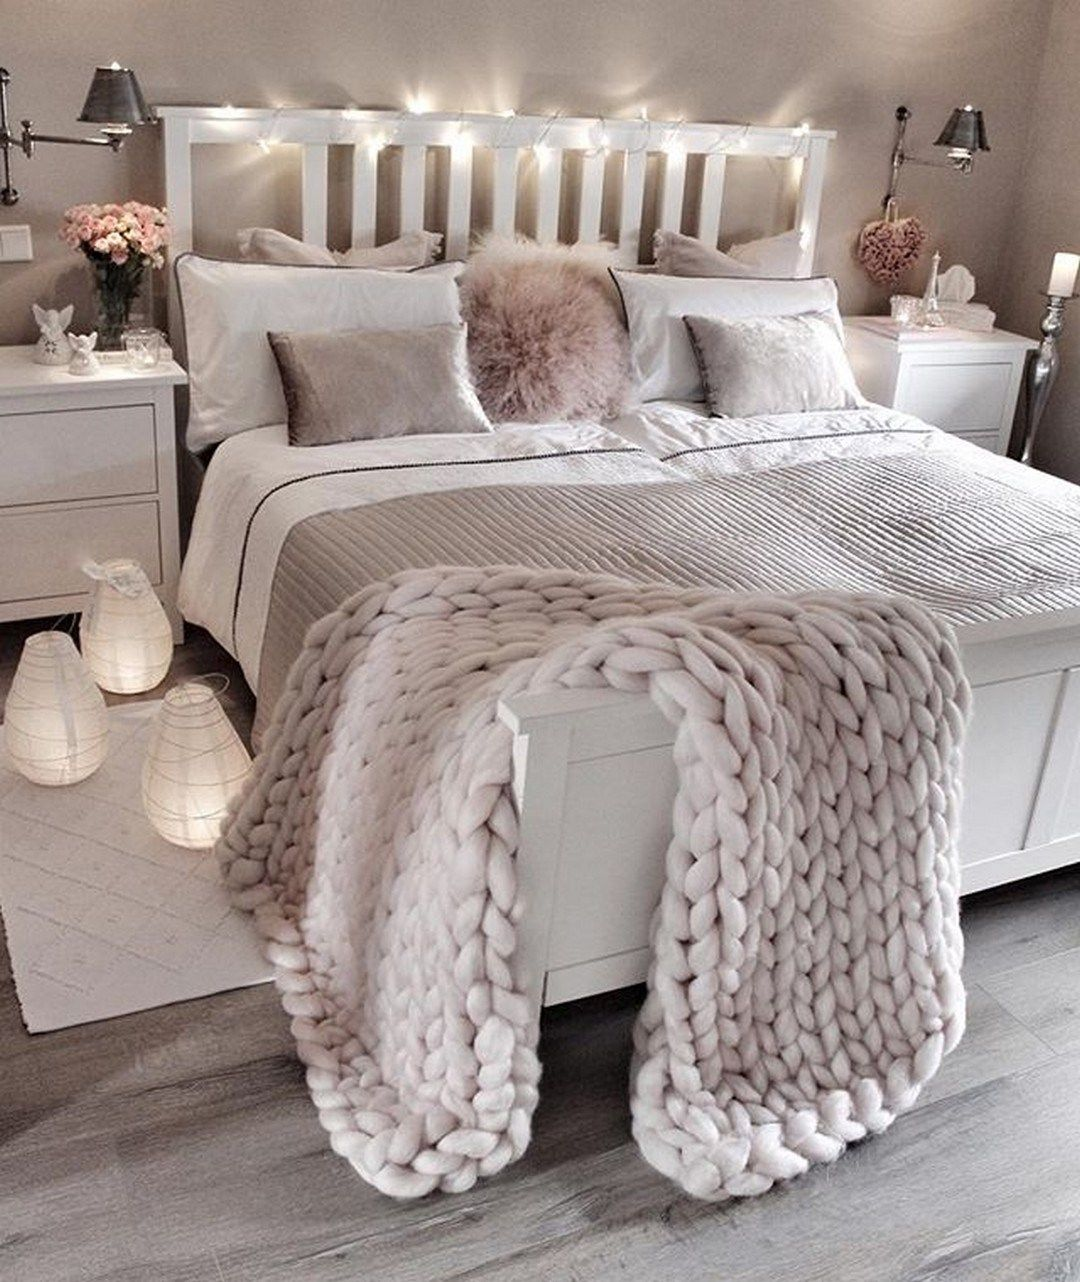 Best Ideas To Make Your Bedroom Extra Cozy And Romantic ... on Cozy Teenage Room Decor  id=32111